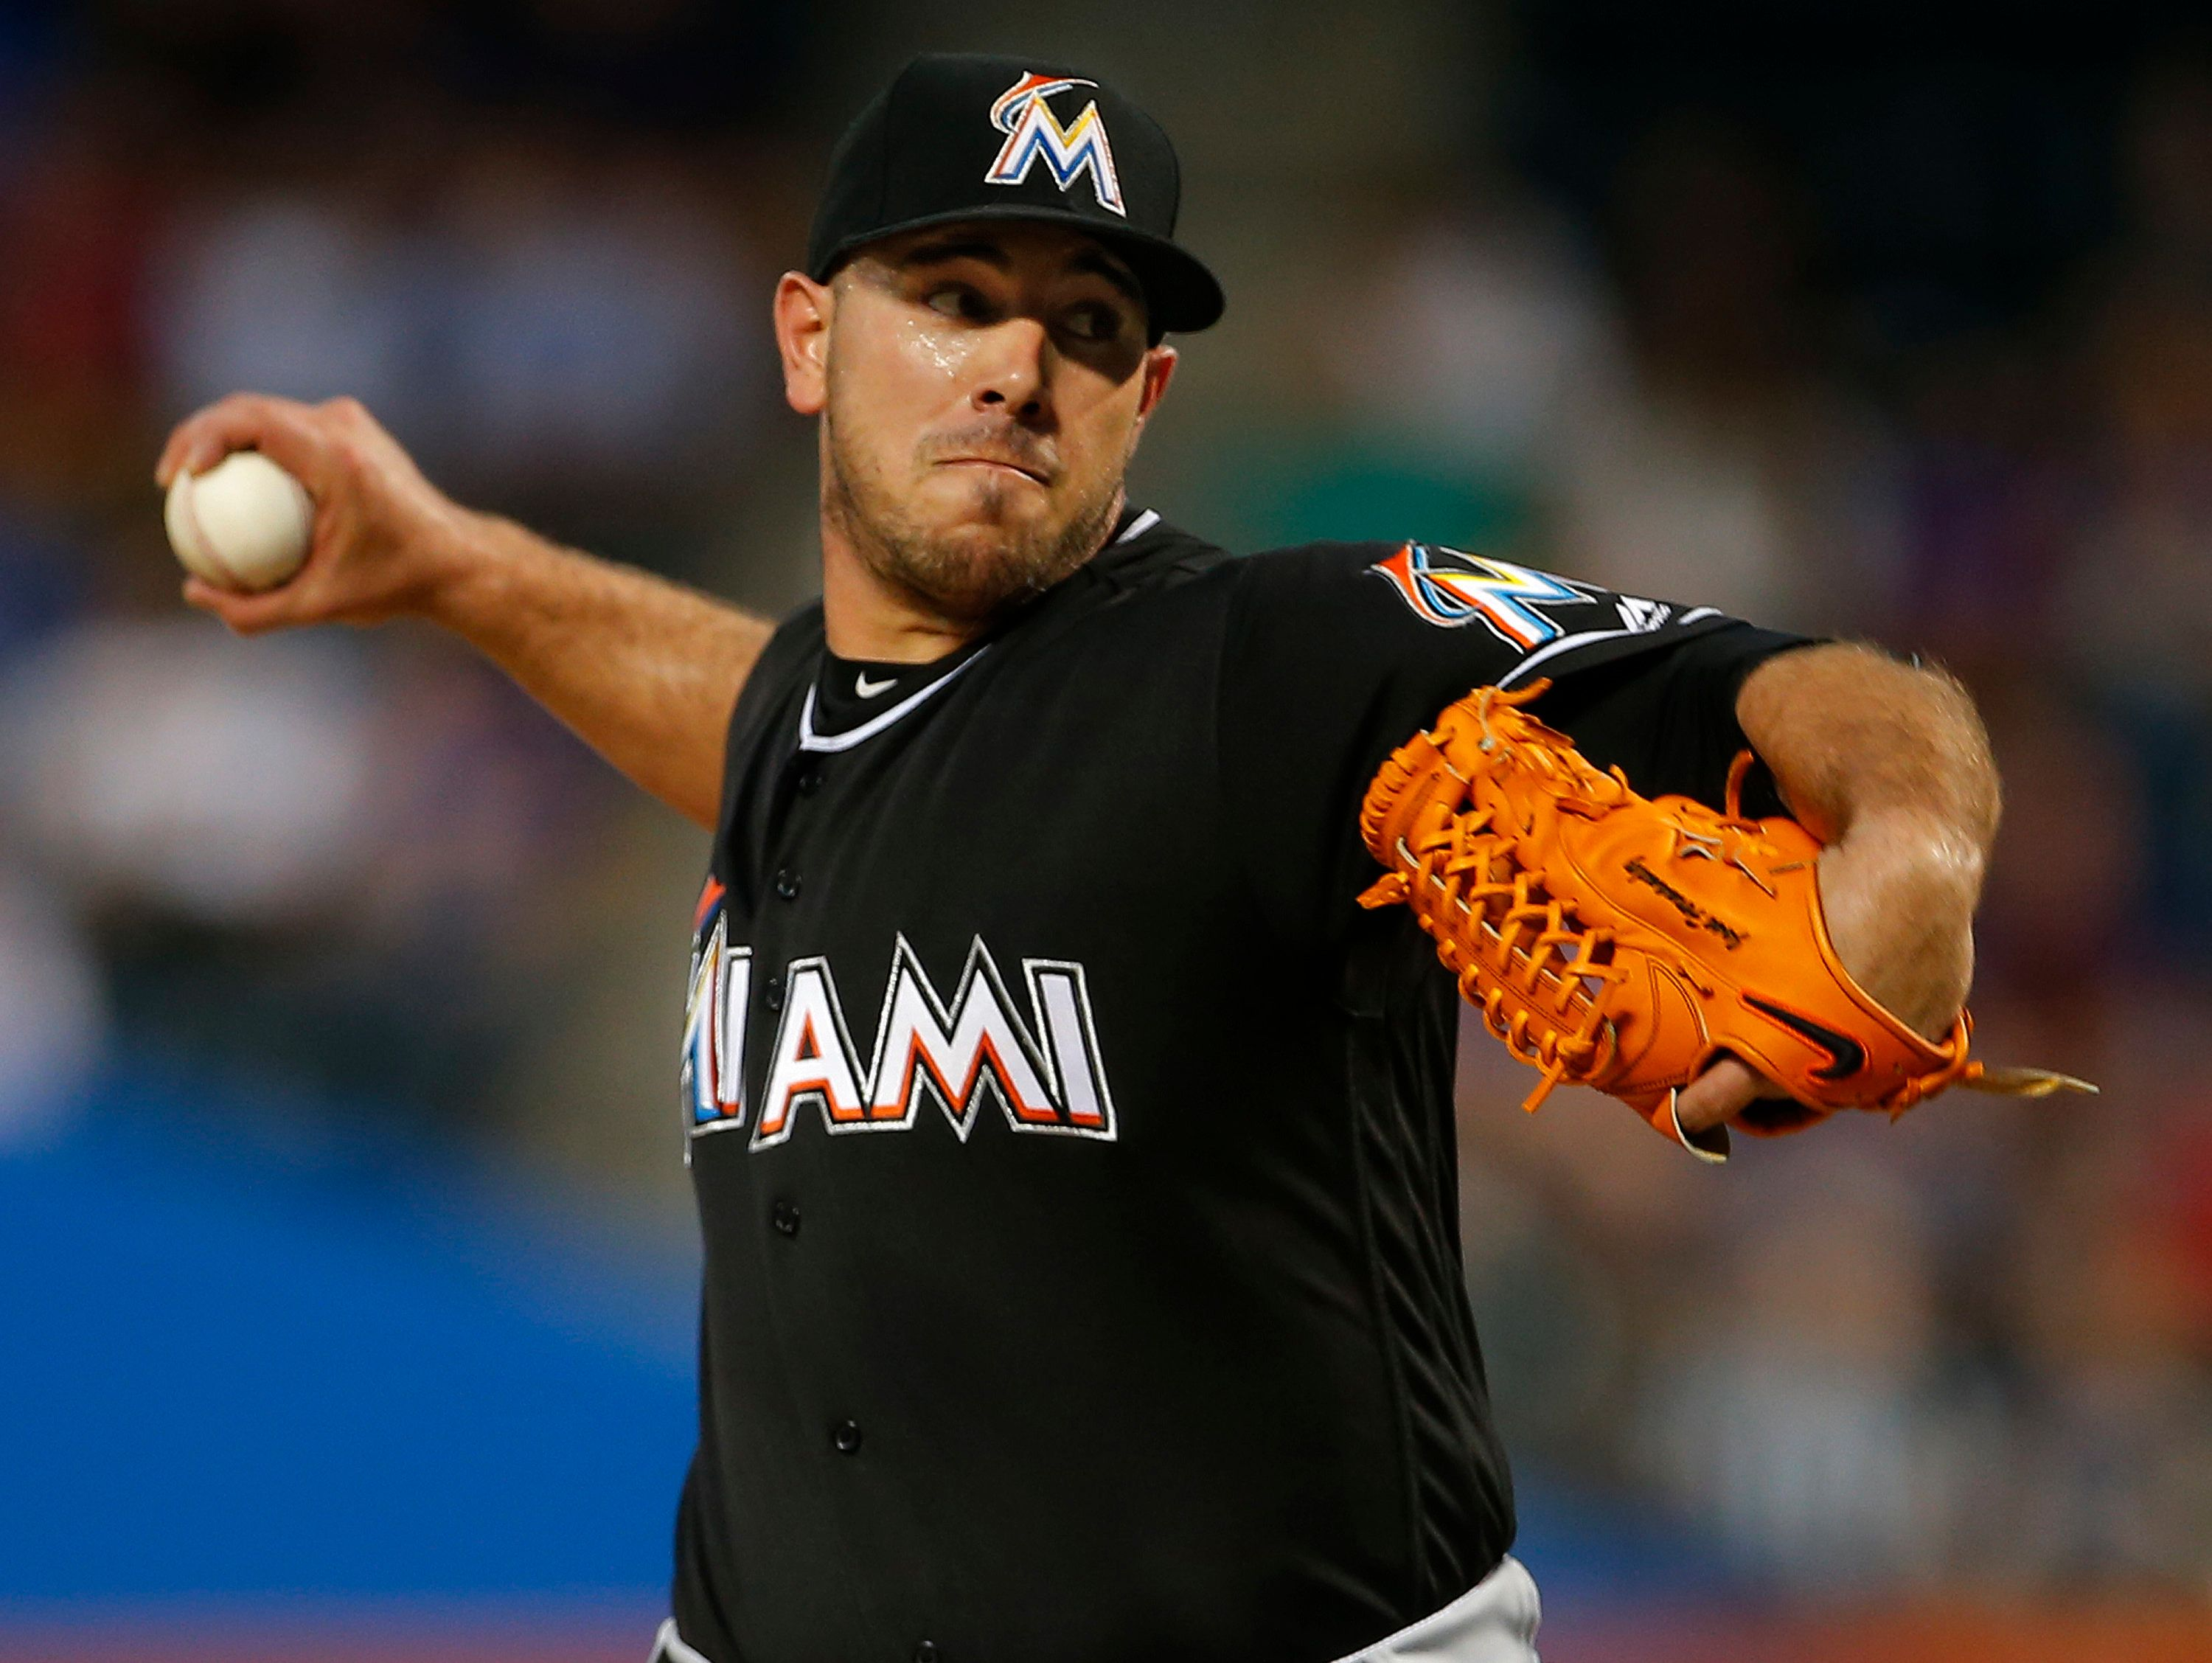 Pitcher Jose Fernandez, 24, of the Miami Marlins was reportedly killed in a boating crash on Sunday.